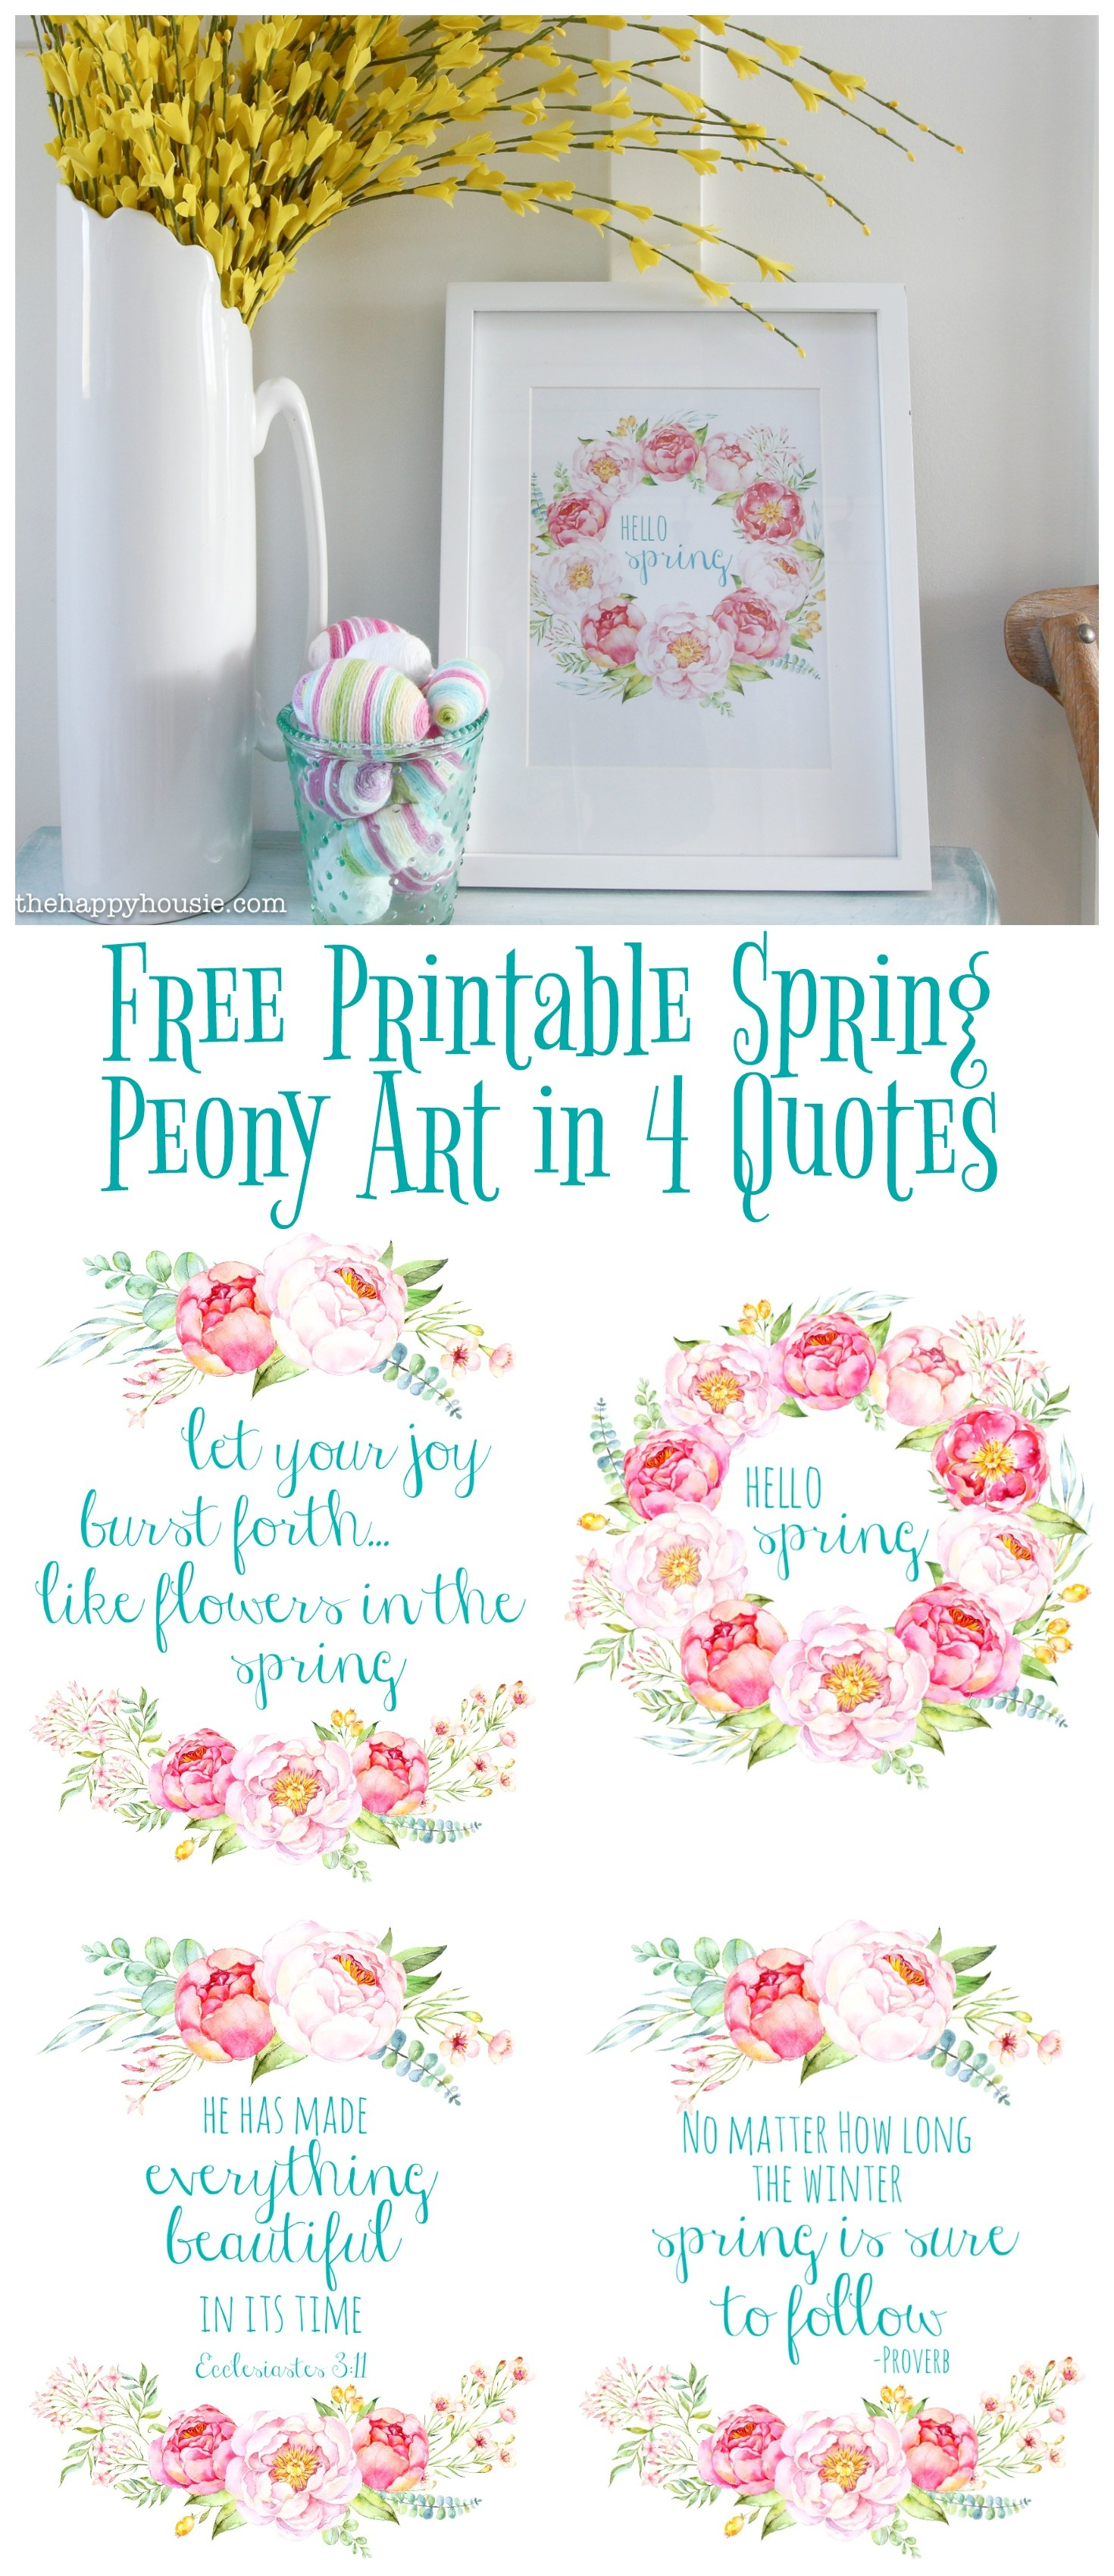 Free Printable Spring Peony Art & Easter Art | The Happy Housie - Free Printable Flowers